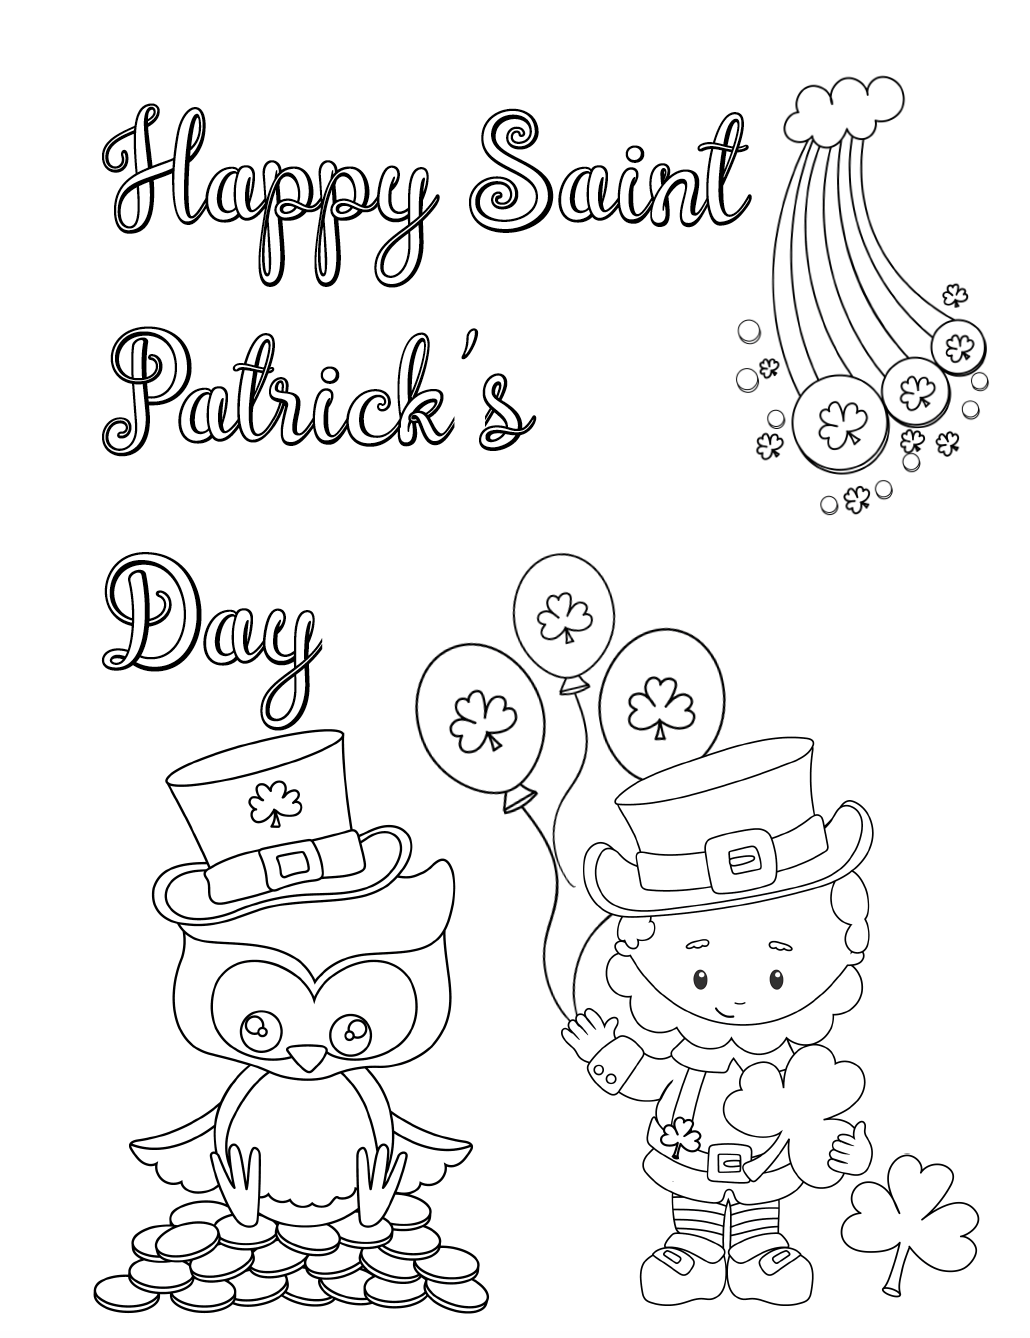 Free Printable St Patrick s Day